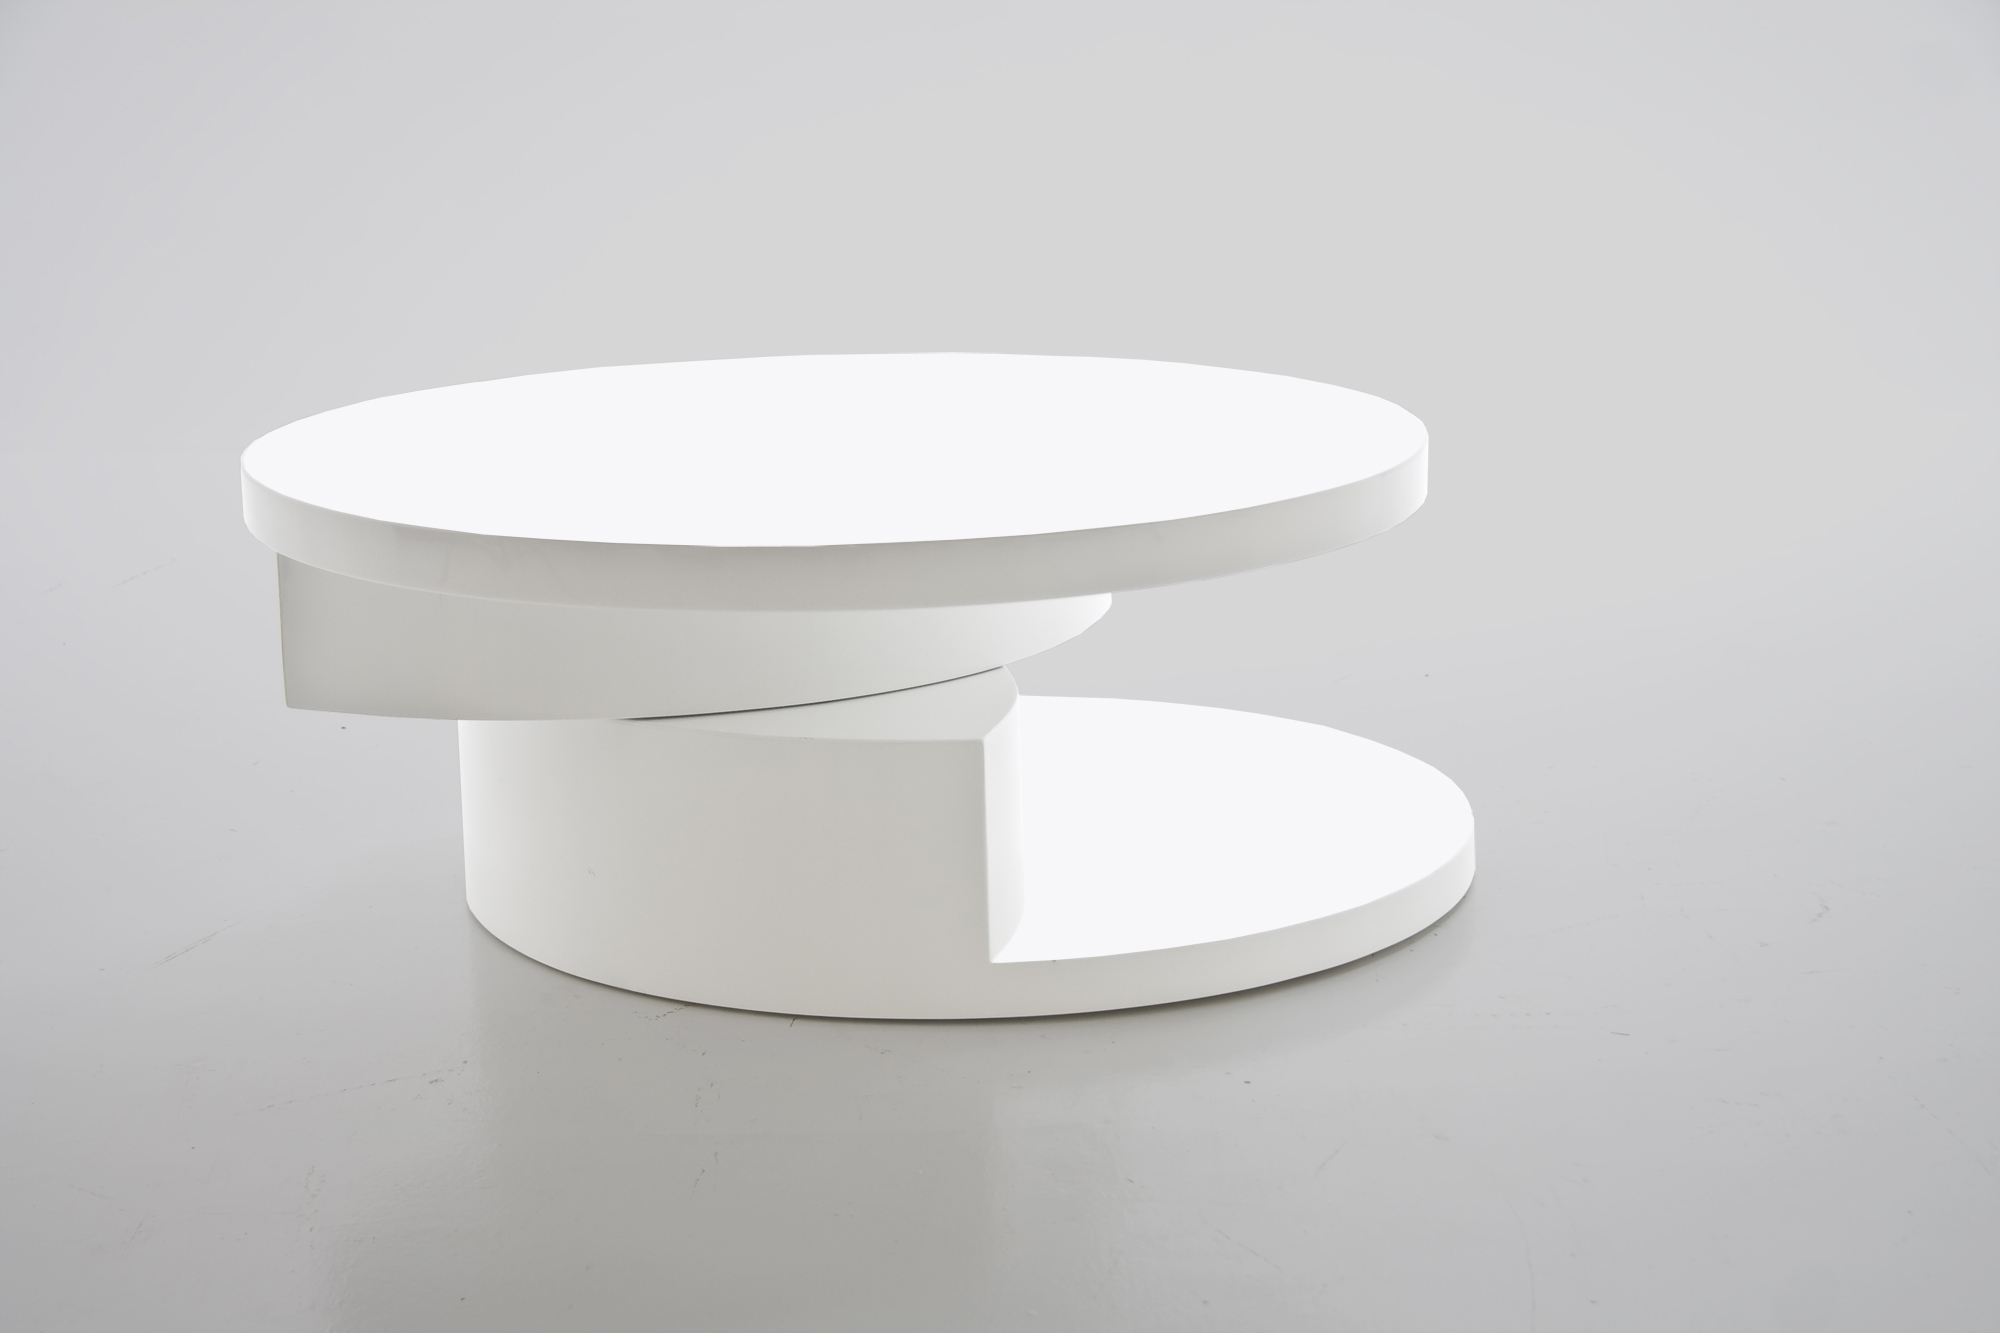 Some Round Coffee Tables Can Have An Unusual Form And Shape Unique Round Tall Coffee Table White Round White Coffee Table (Image 9 of 10)